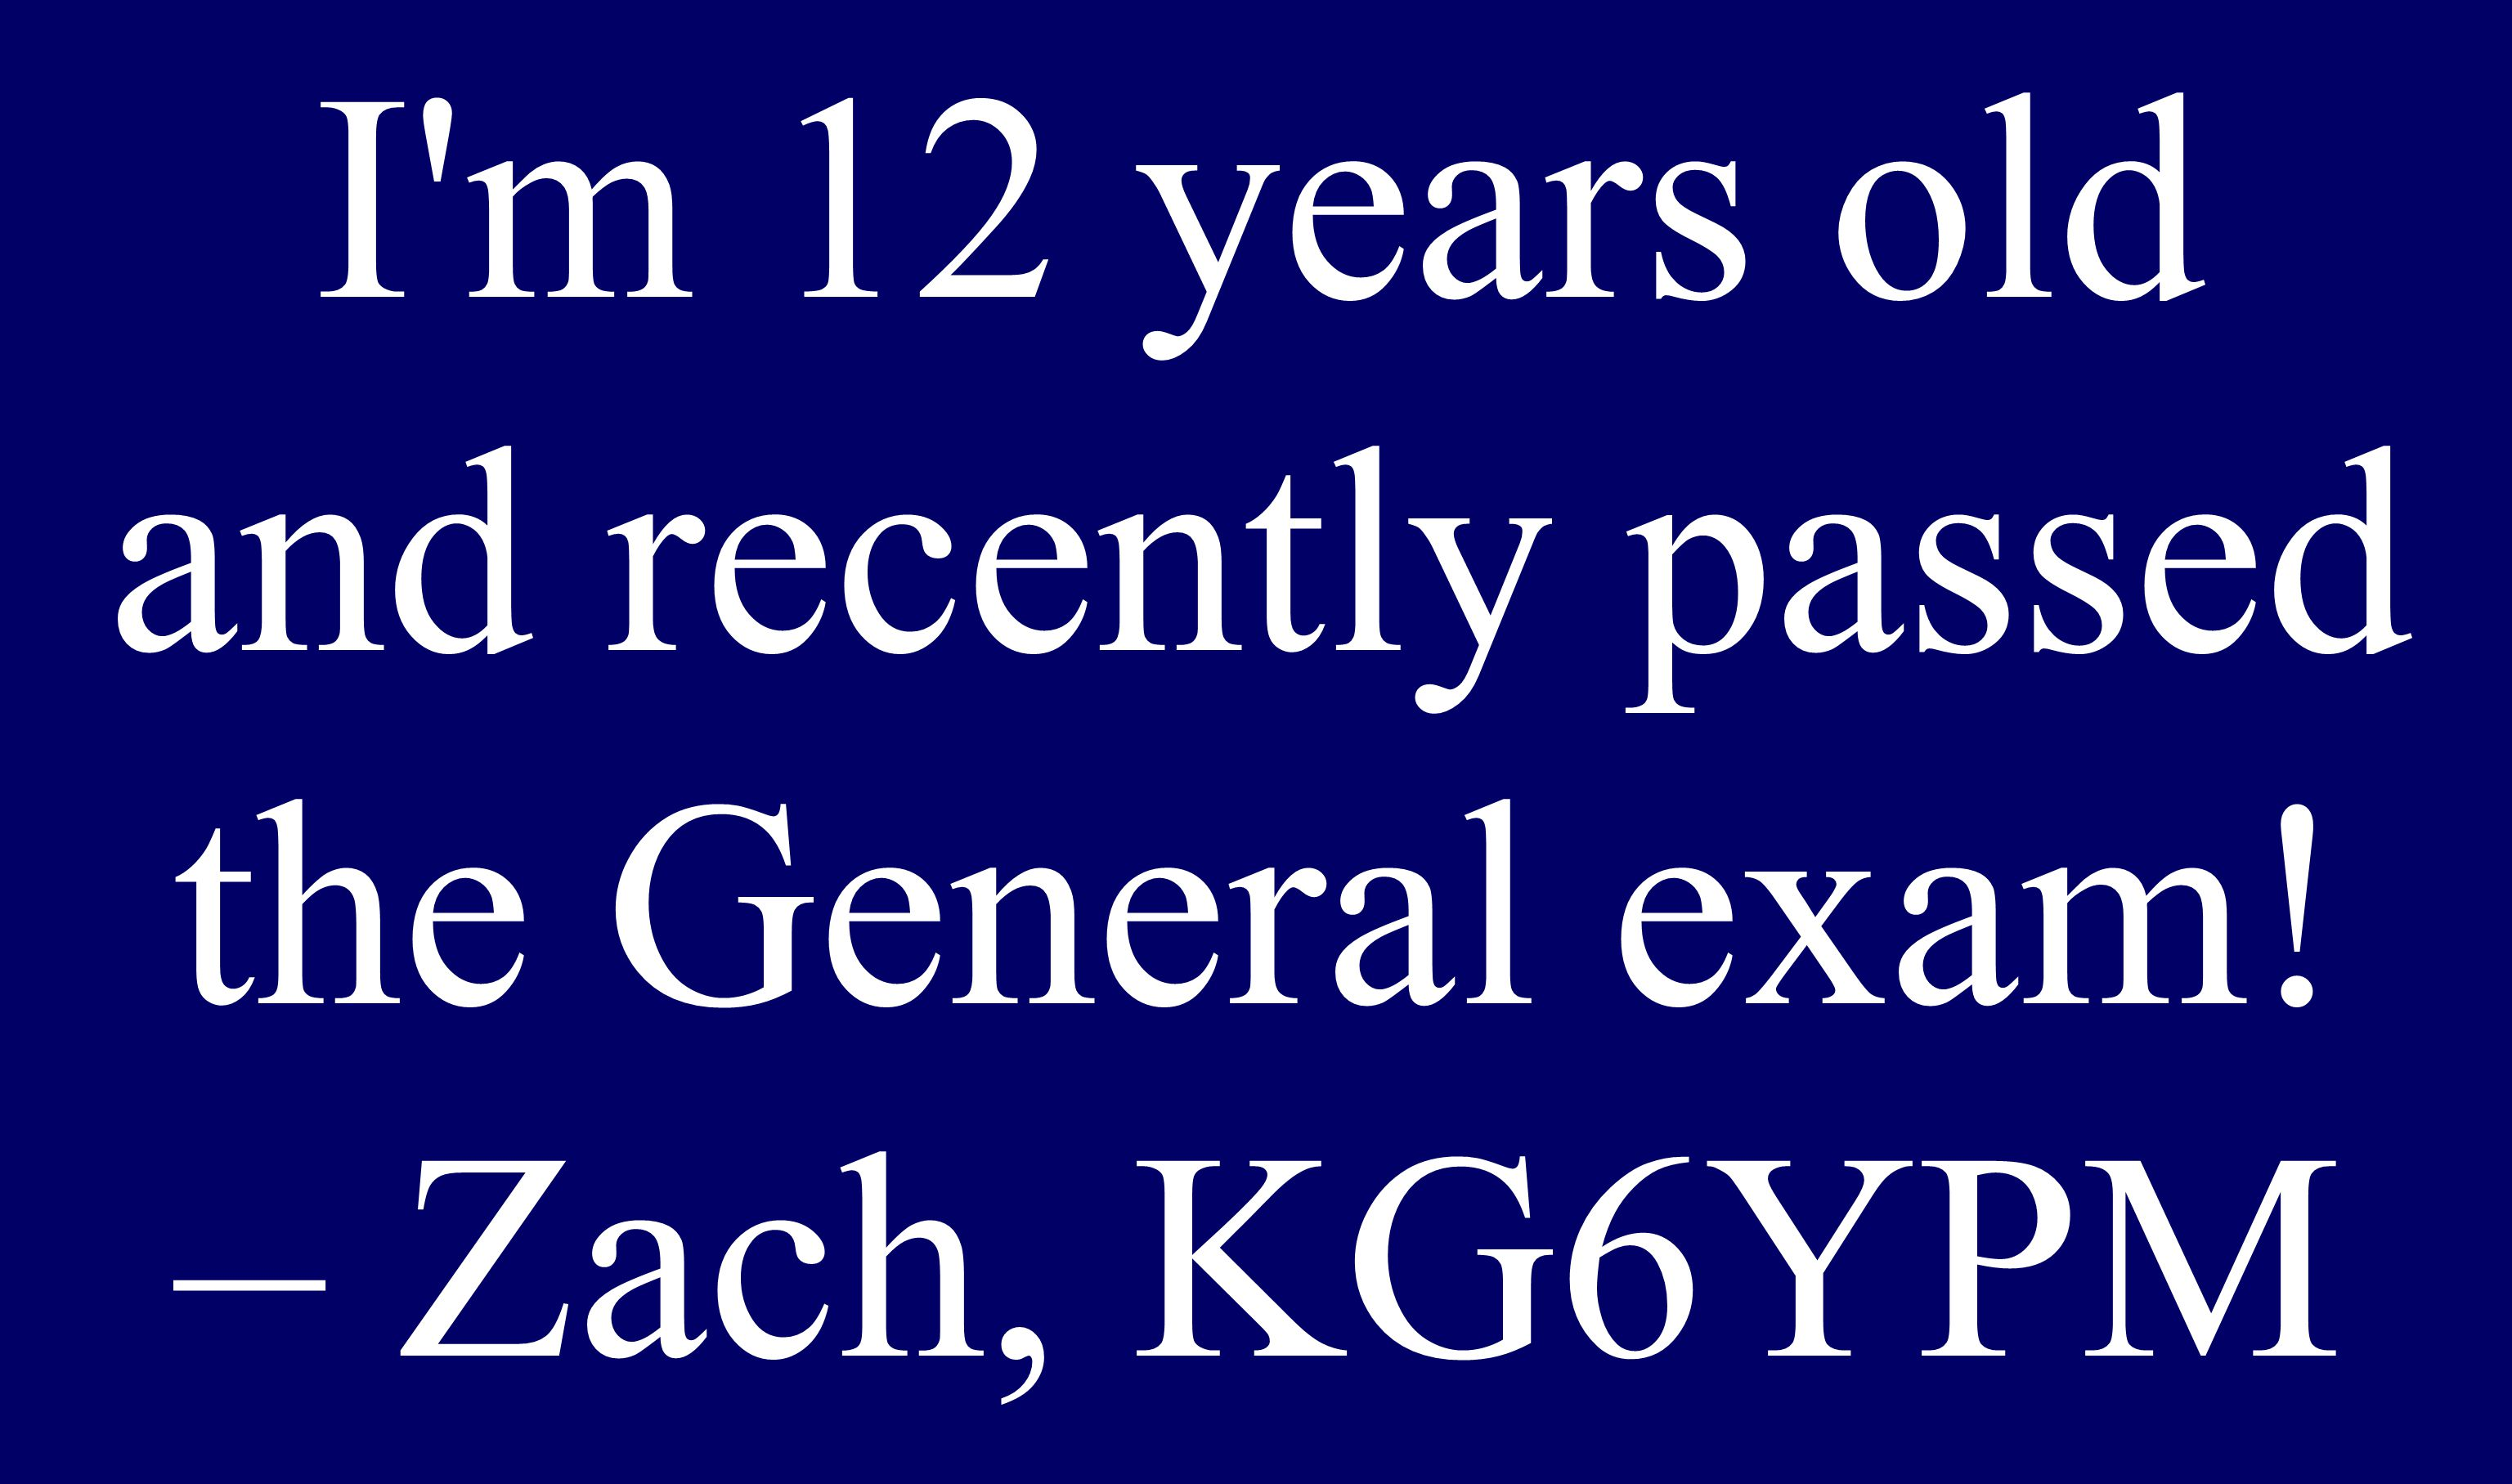 I m 12 years old and recently passed the General exam! – Zach, KG6YPM